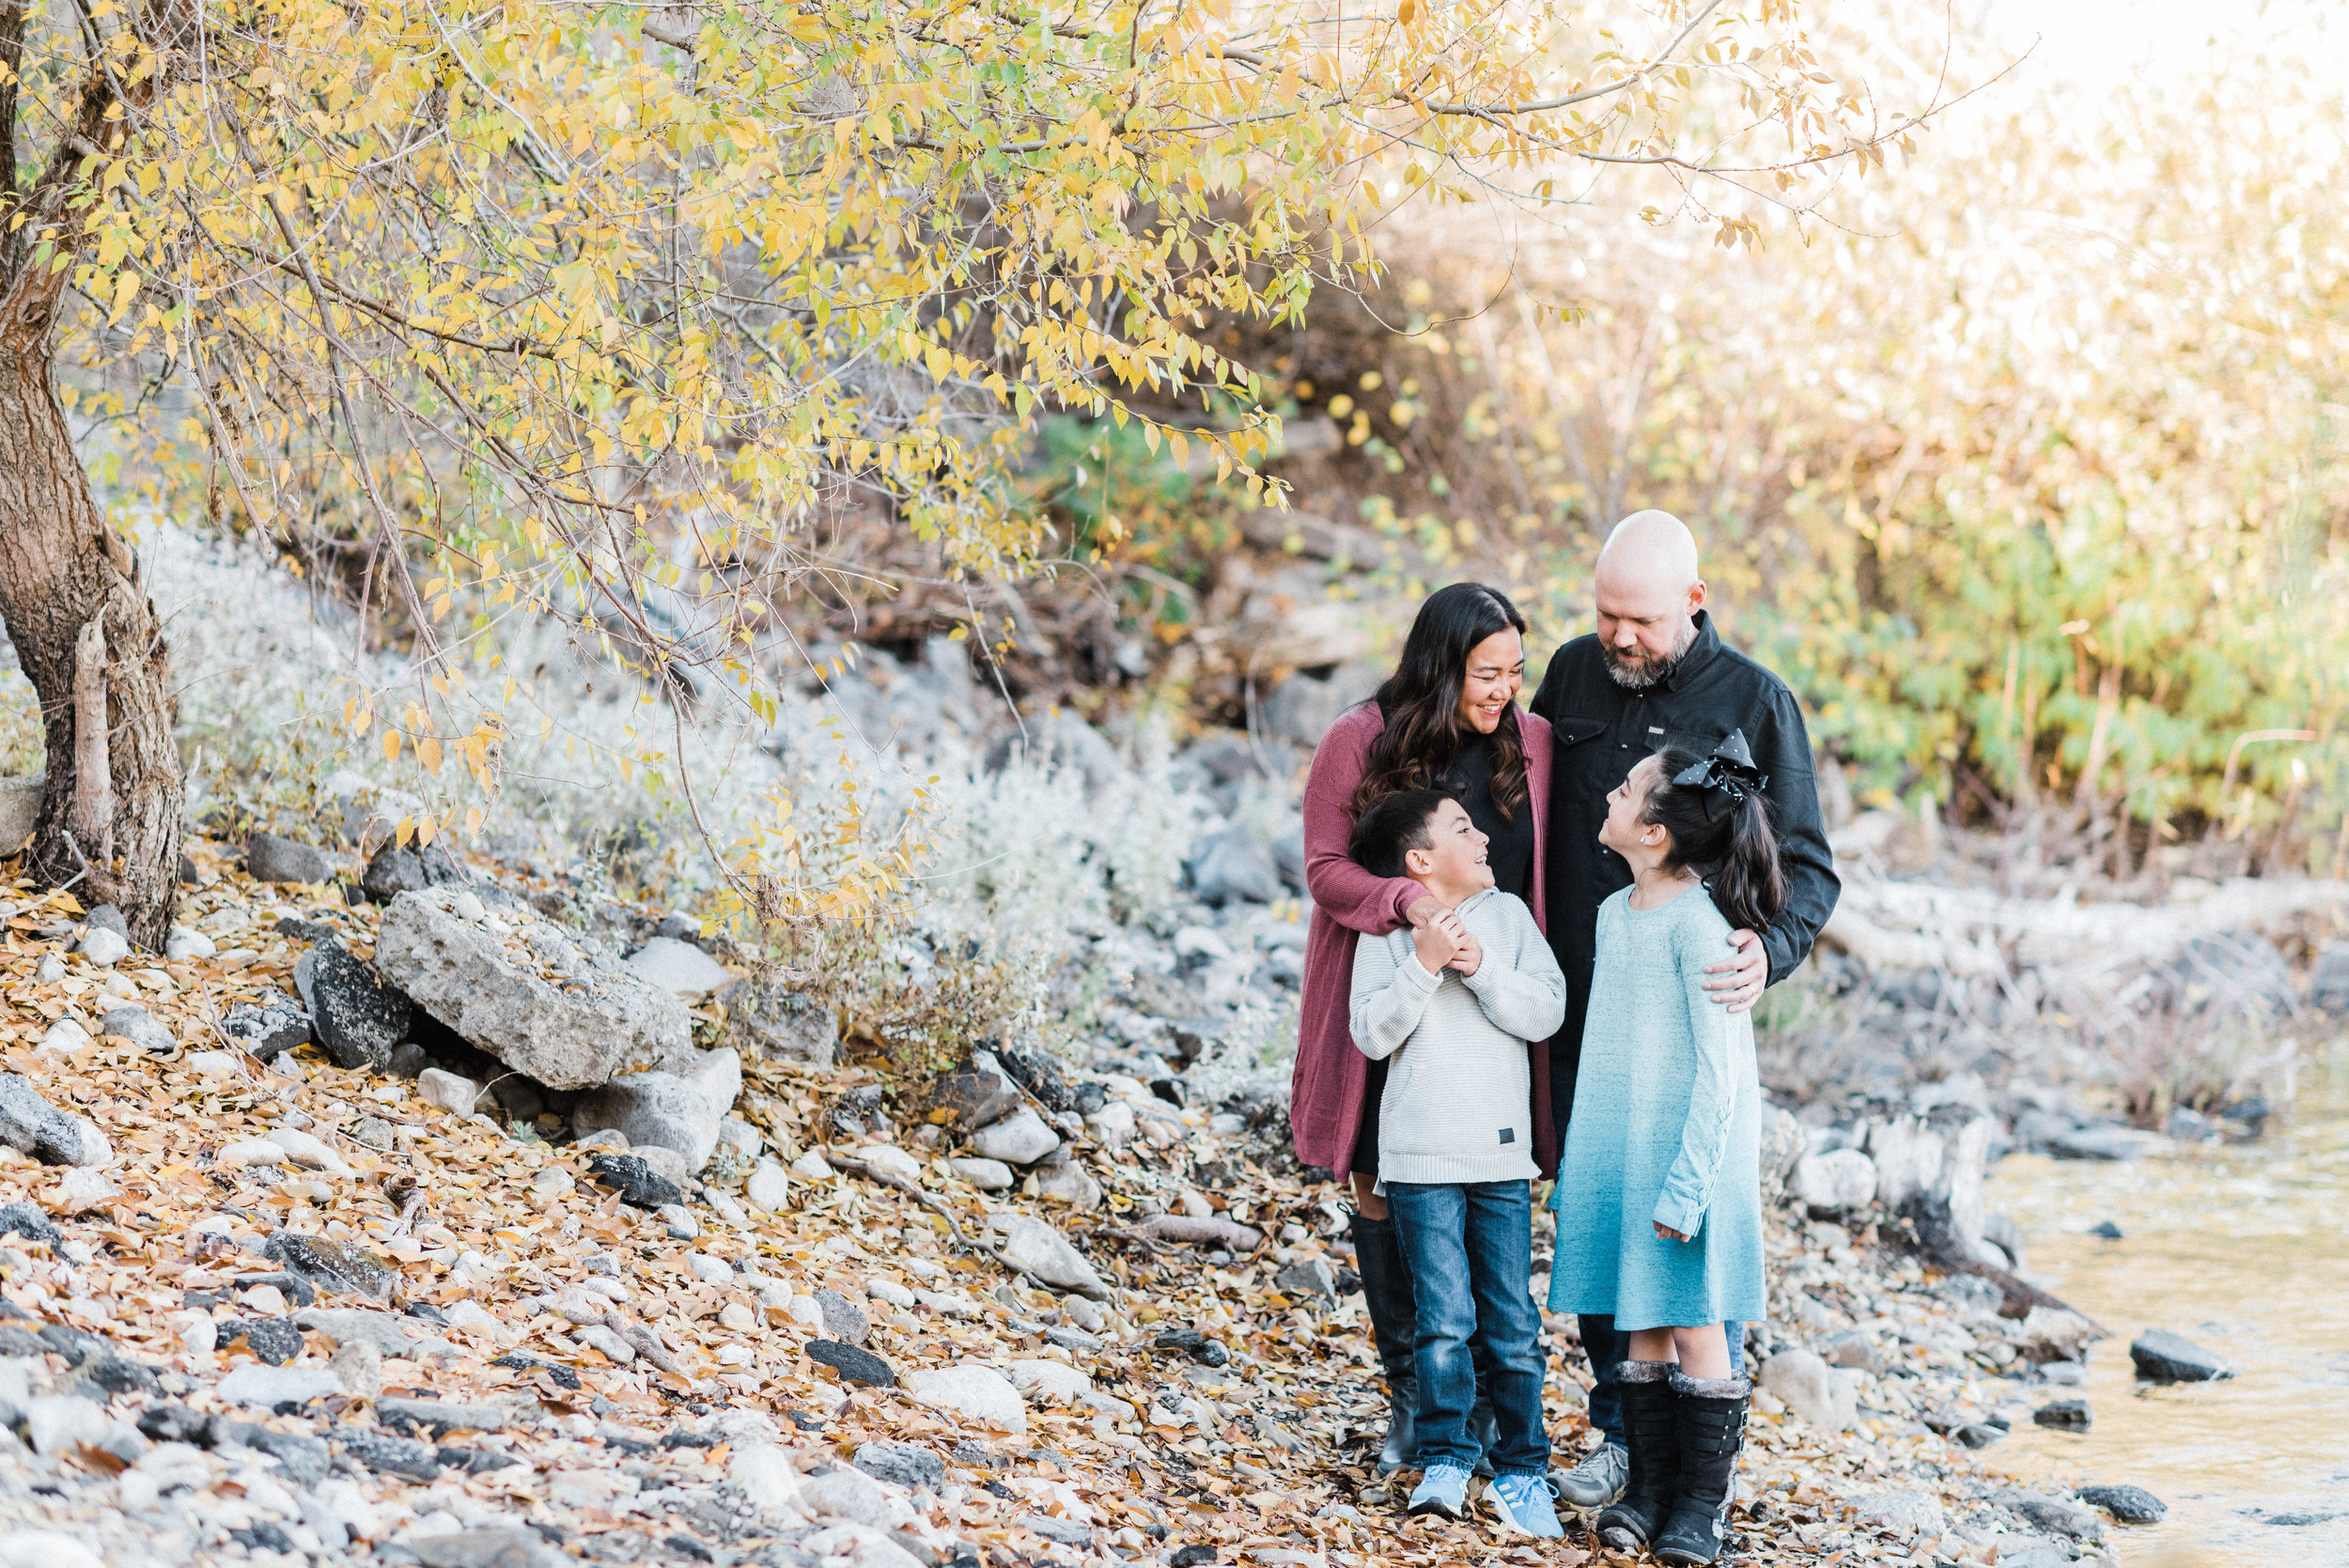 spokane-family-session-solberg (17 of 30).jpg